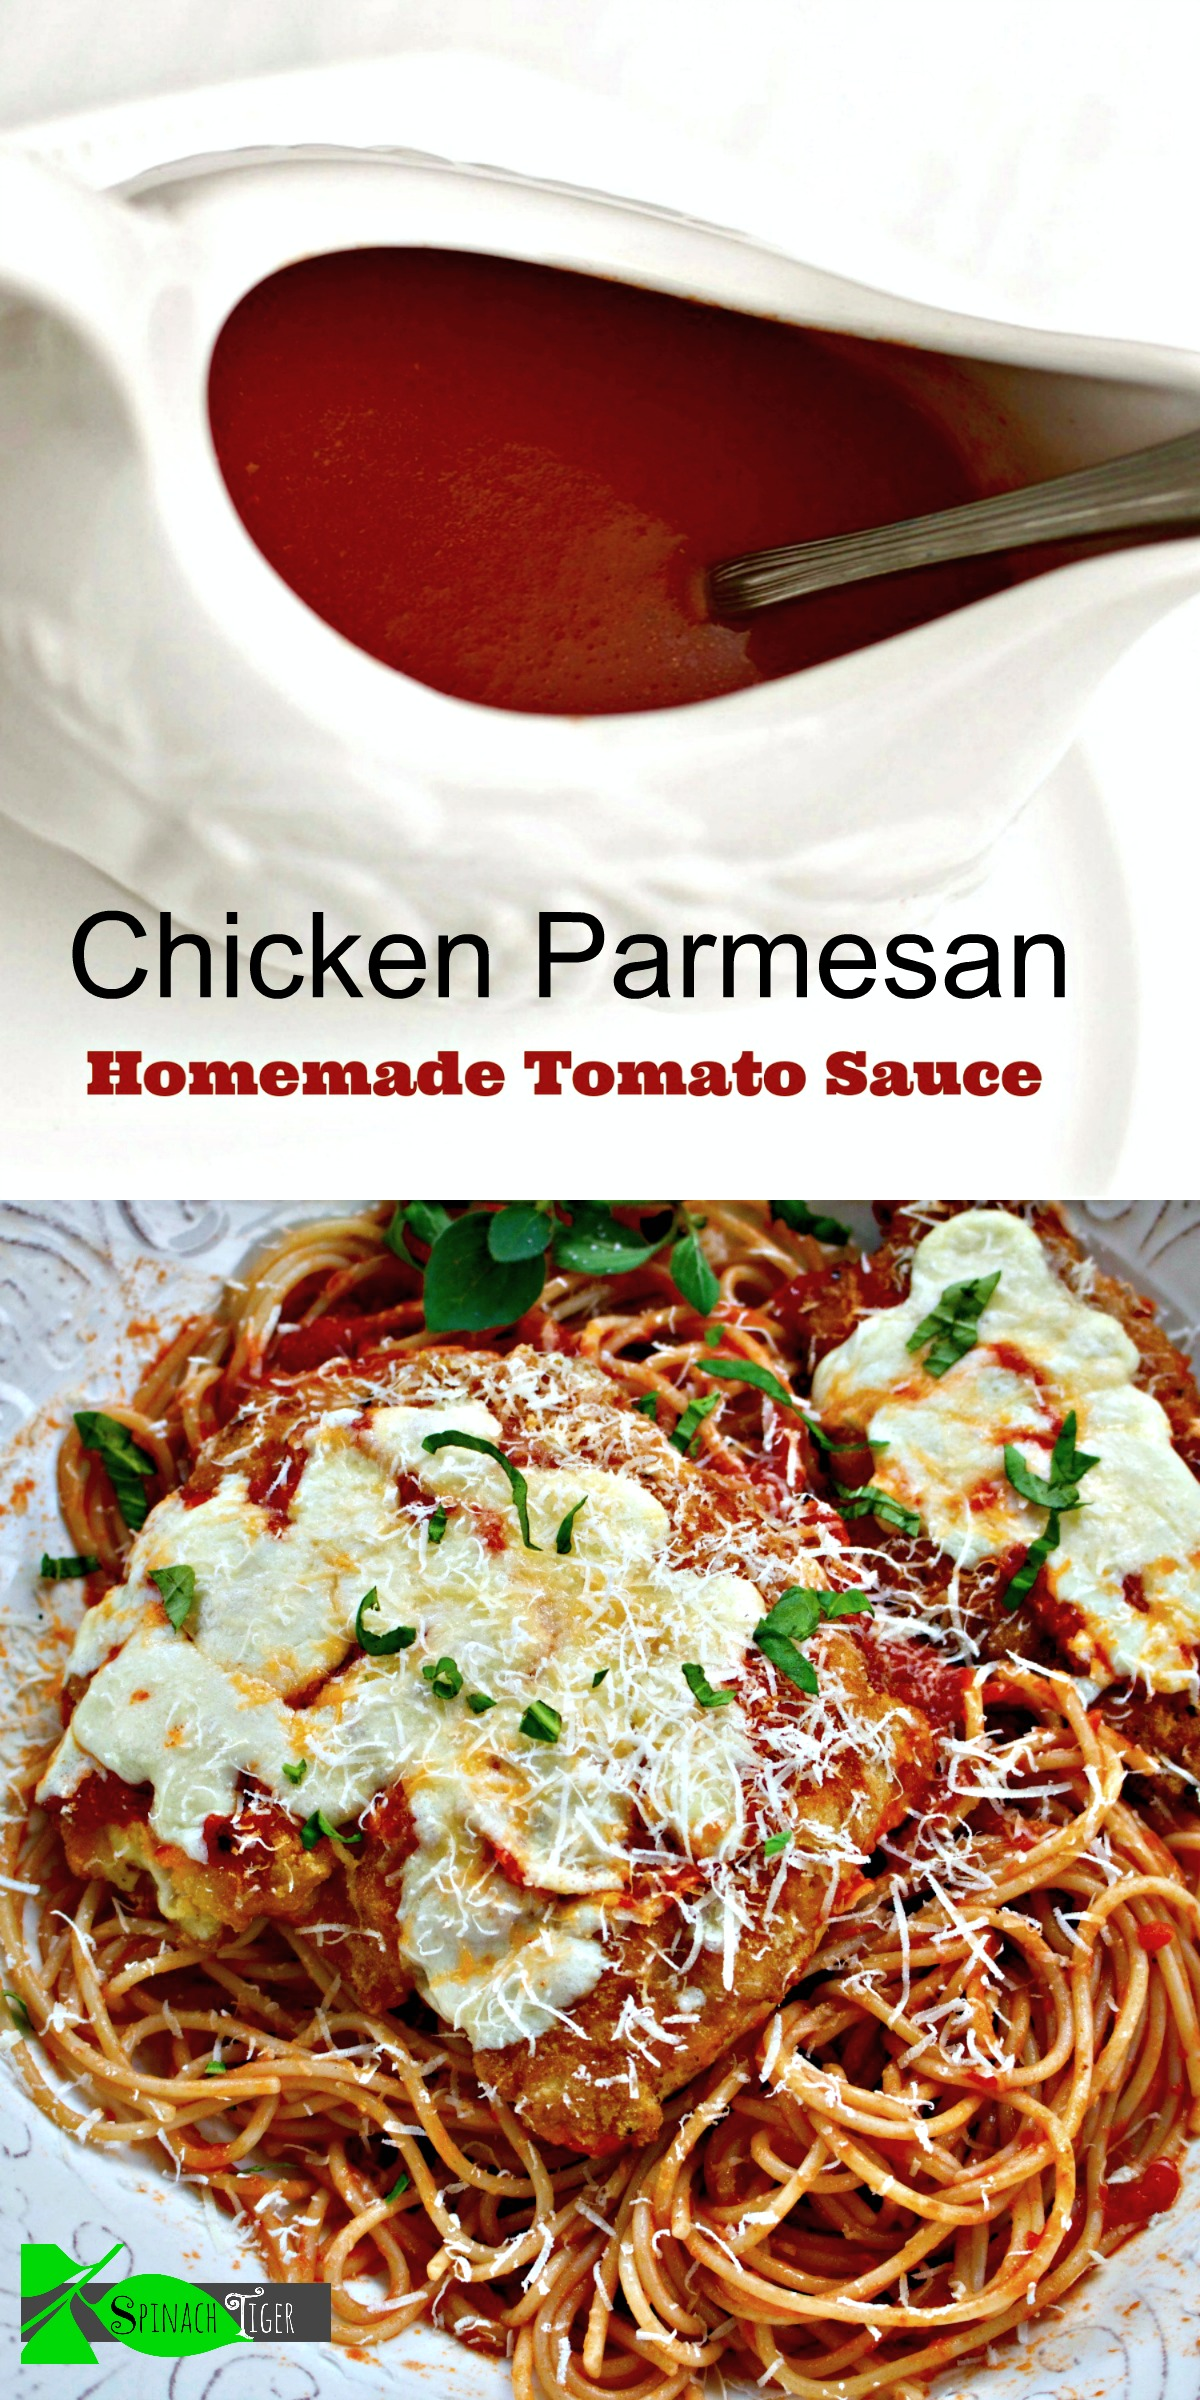 Homemade Tomato Sauce with Gluten Free Chicken Parmesan